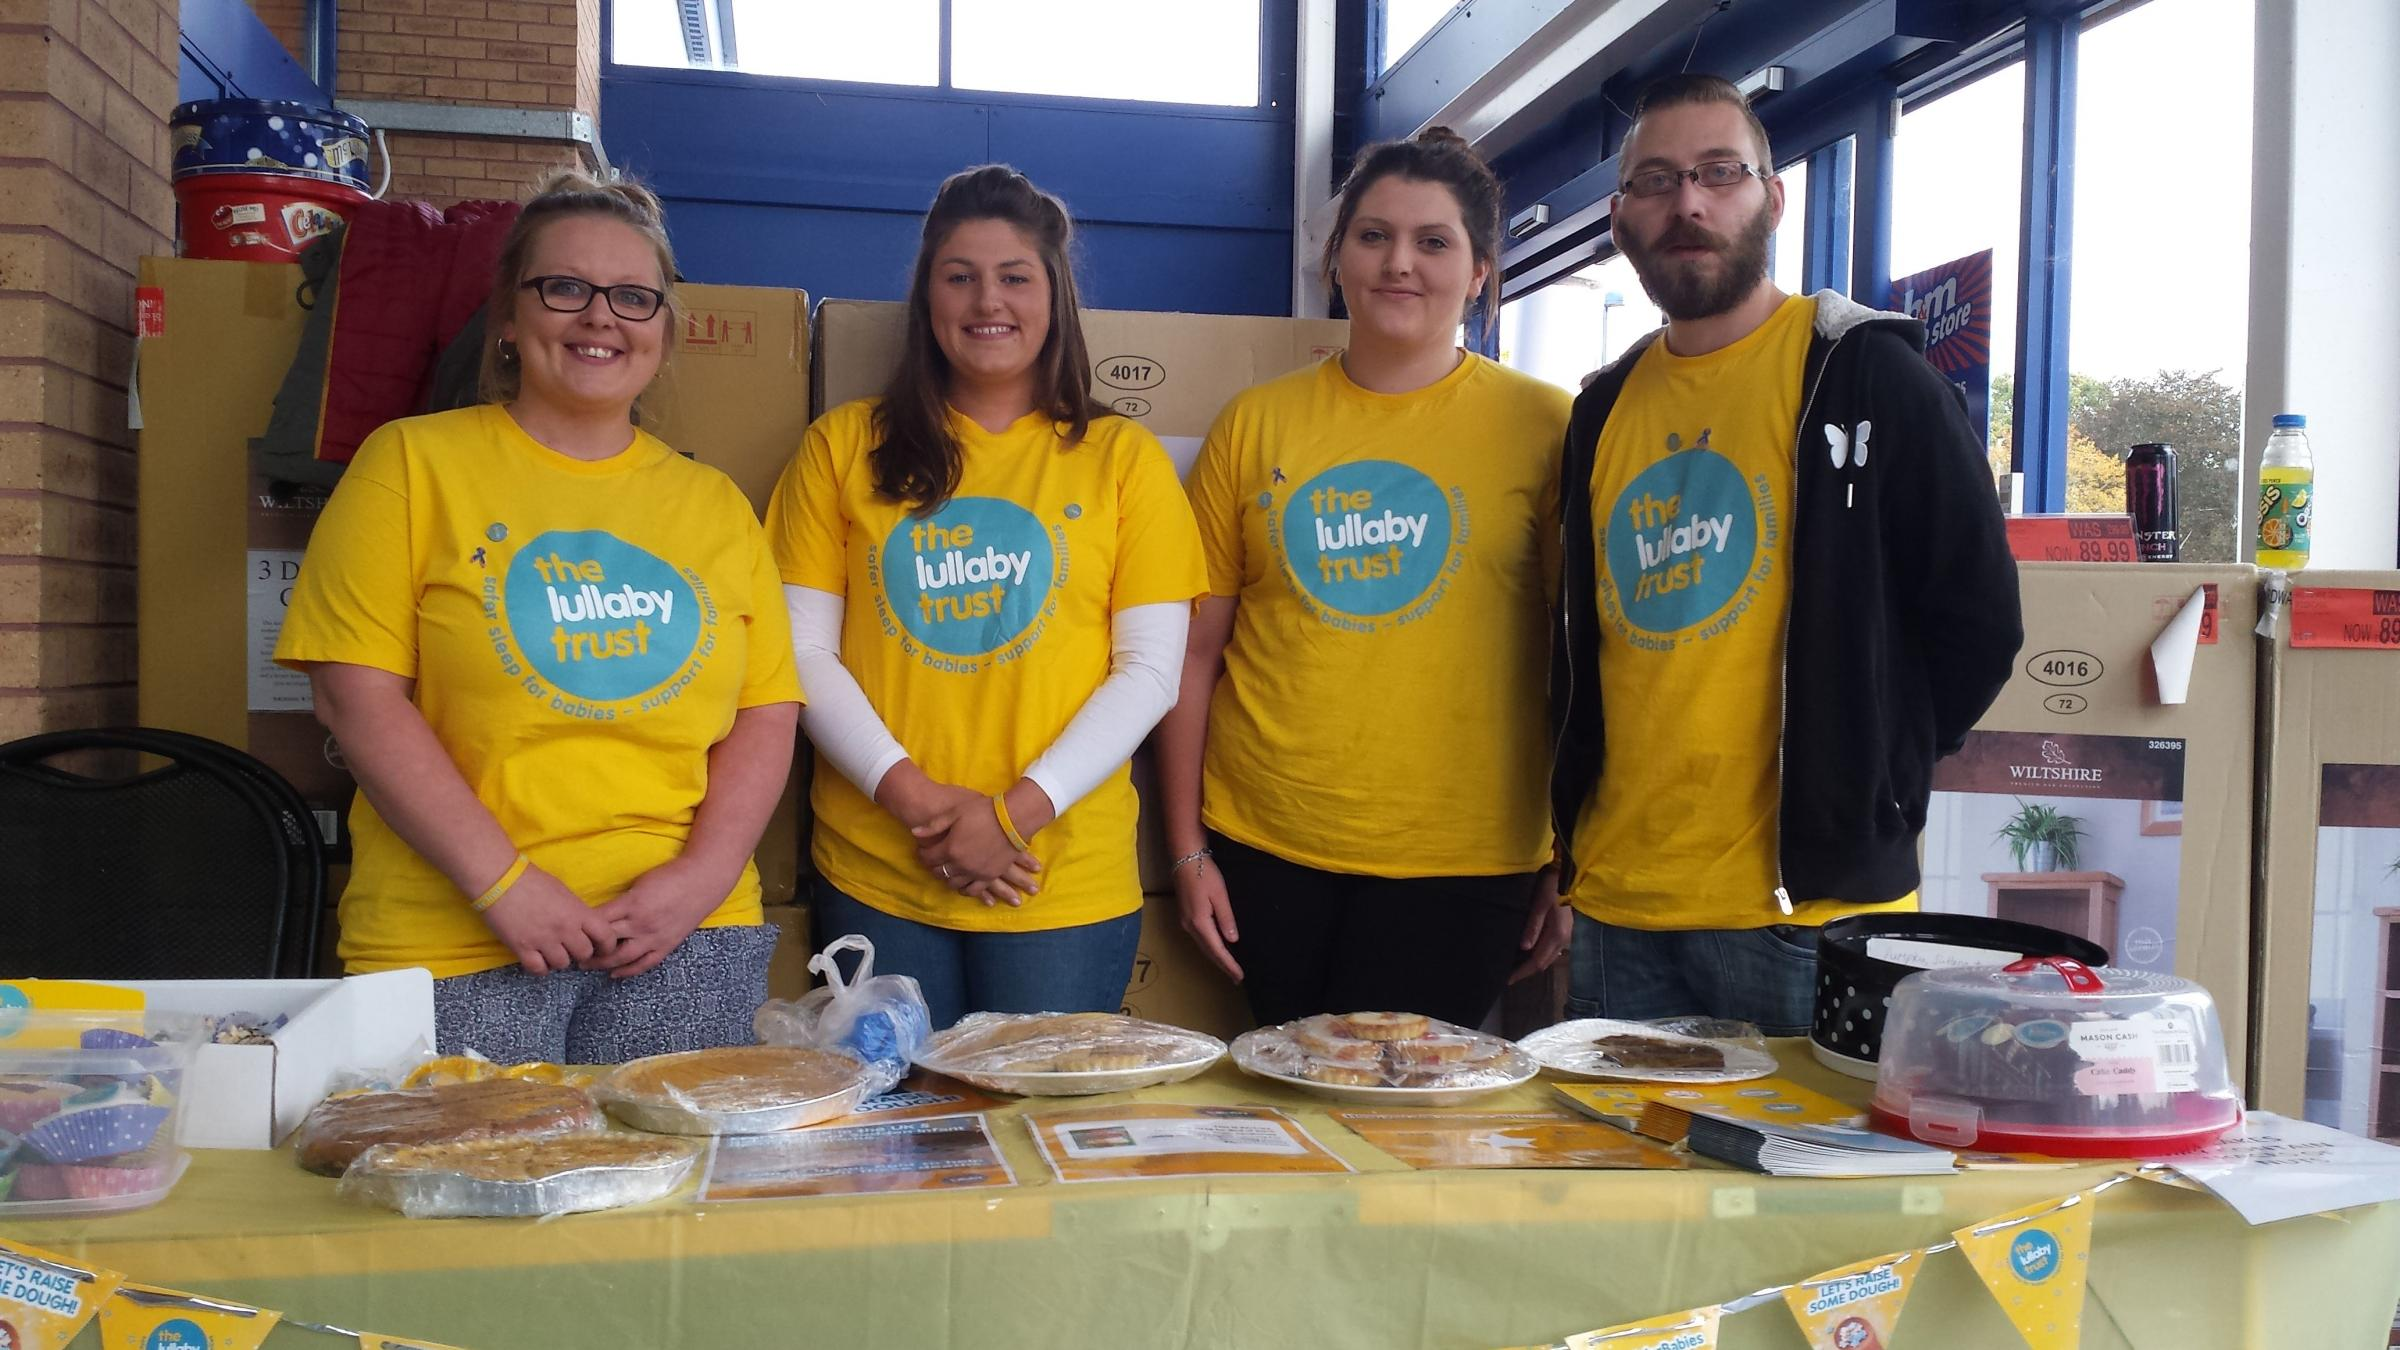 RAISING AWARENESS: (Right to left) Brad Cooper and Ruth Orchard with Ruth's sister Rachel and family friend Gemma Boycott at the B&M bake sale